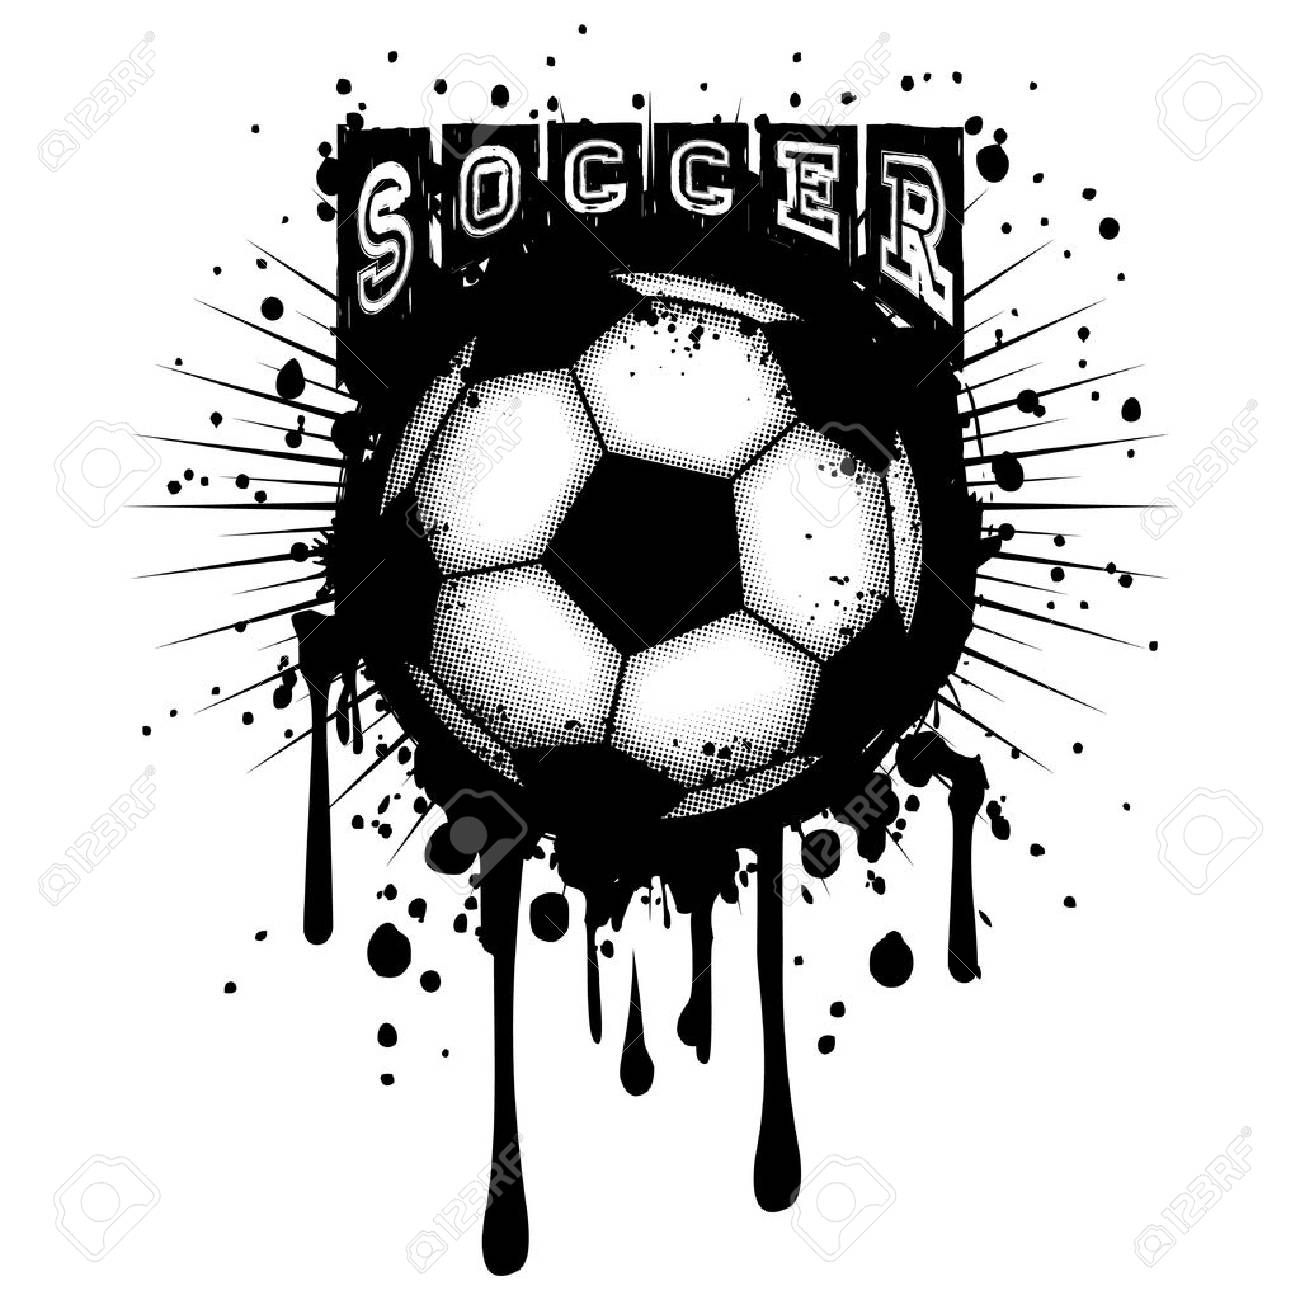 Abstract Vector Illustration Grunge Black And White Football Black And White Football Black And White Posters Illustration Design